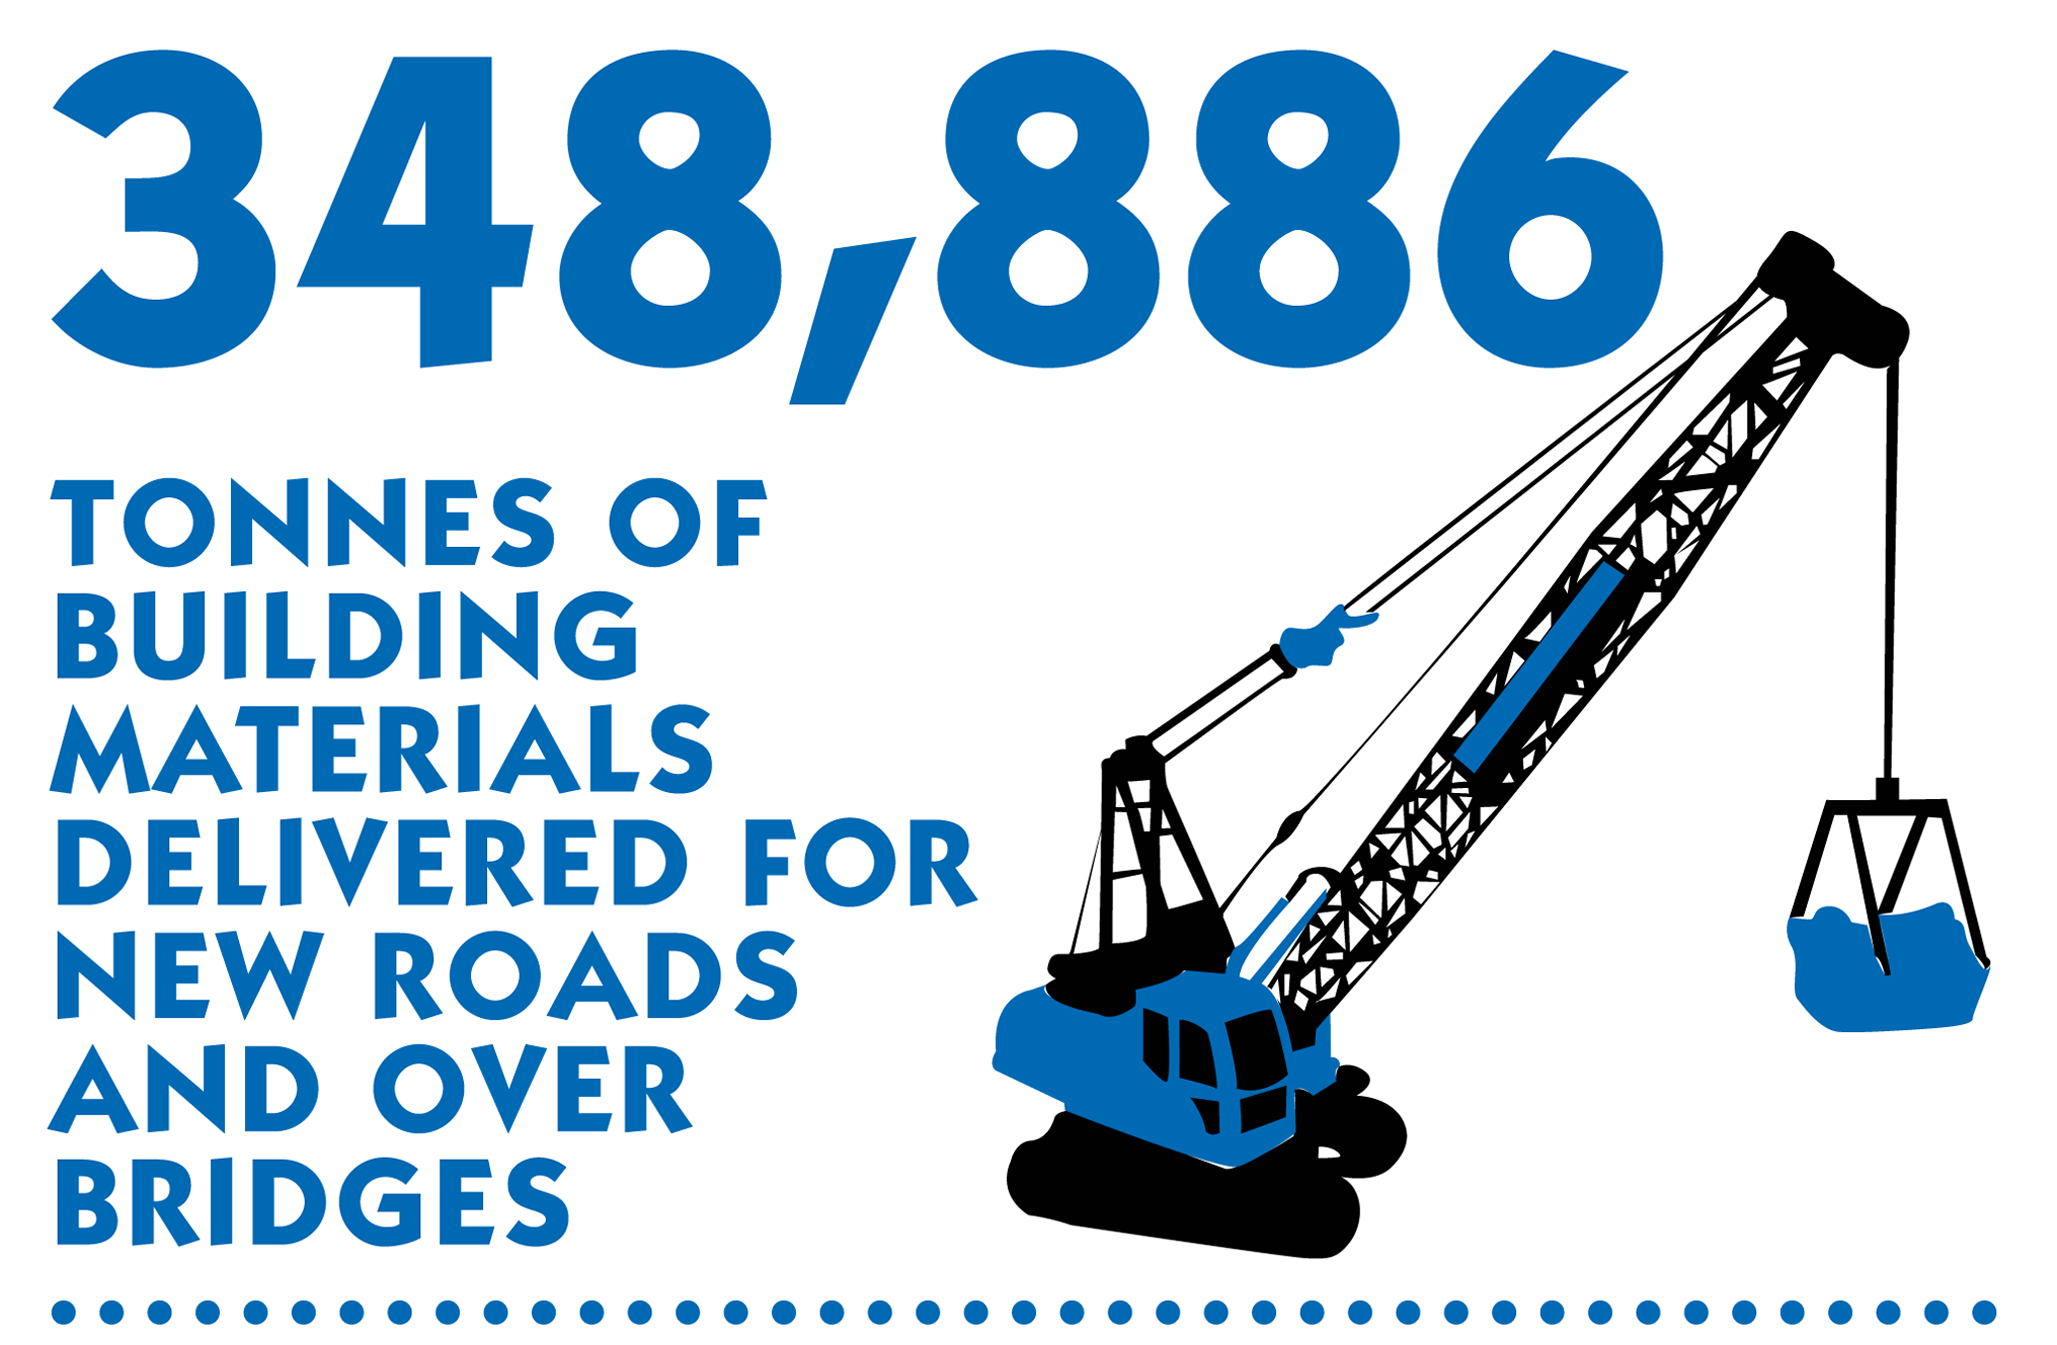 348,886 Tonnes of building materials delivered for new roads and over bridges